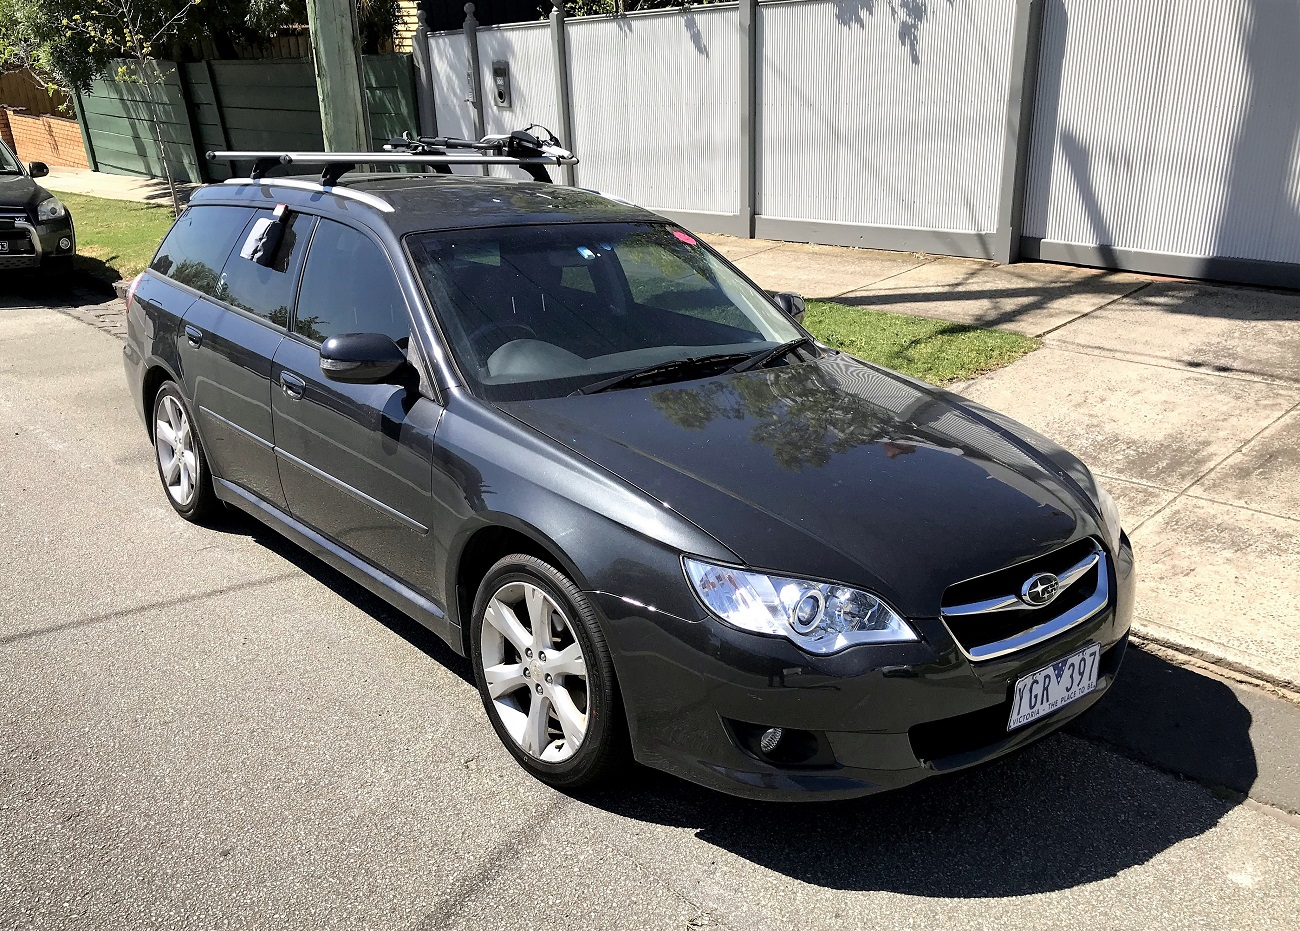 Picture of Alana's 2009 Subaru Liberty